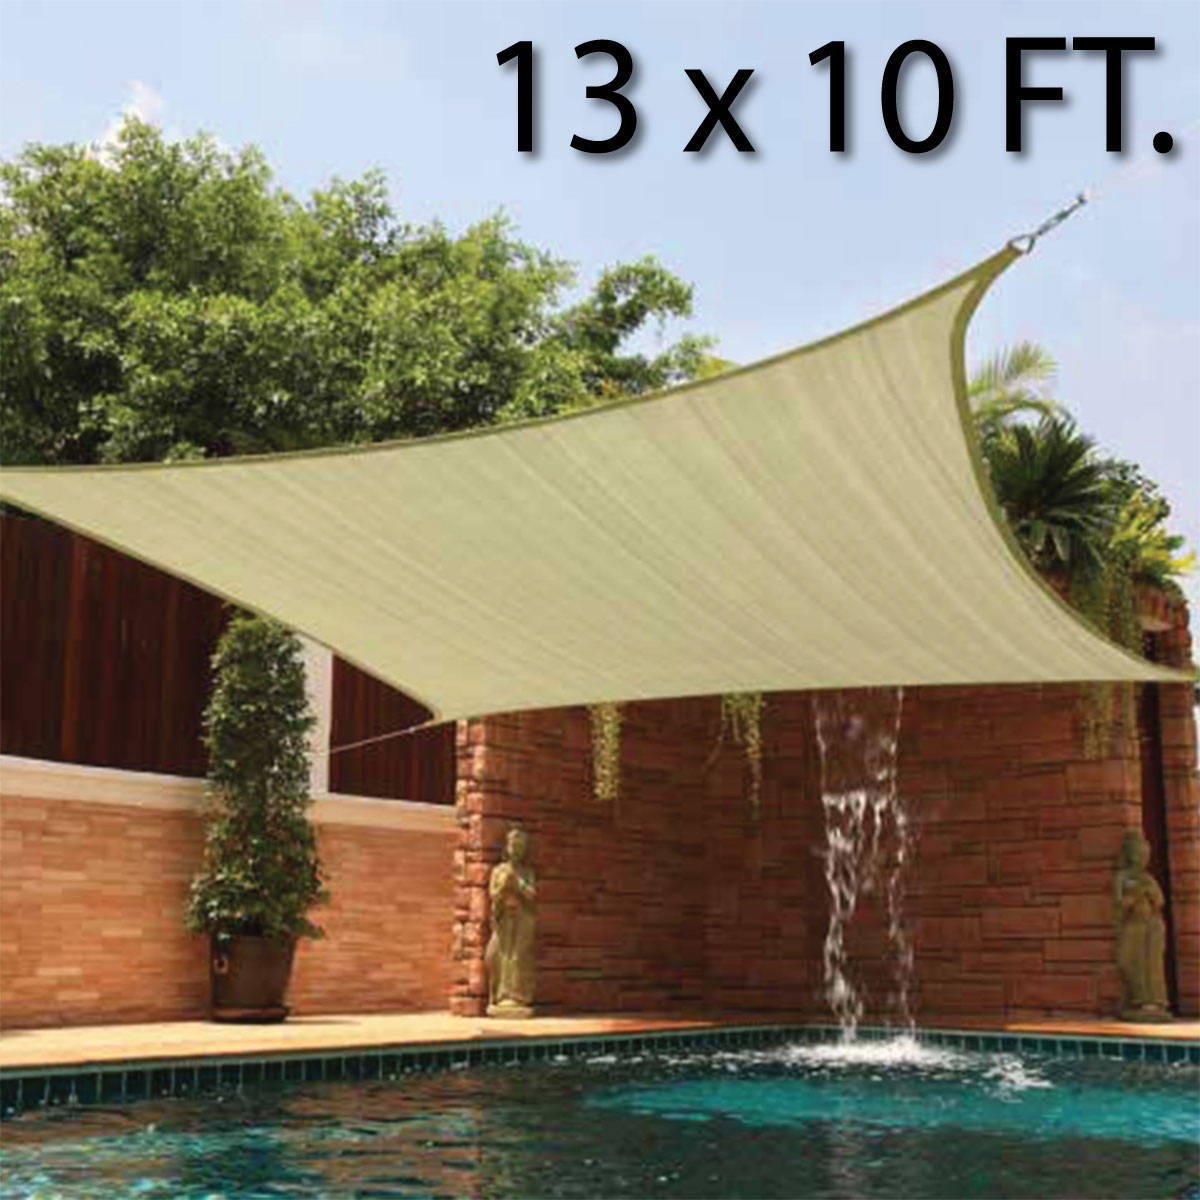 Superb 10 X 13u0027 FT Feet Rectangle UV Heavy Duty Sun Shade Sail Patio Cover Sand  Canopy   Walmart.com